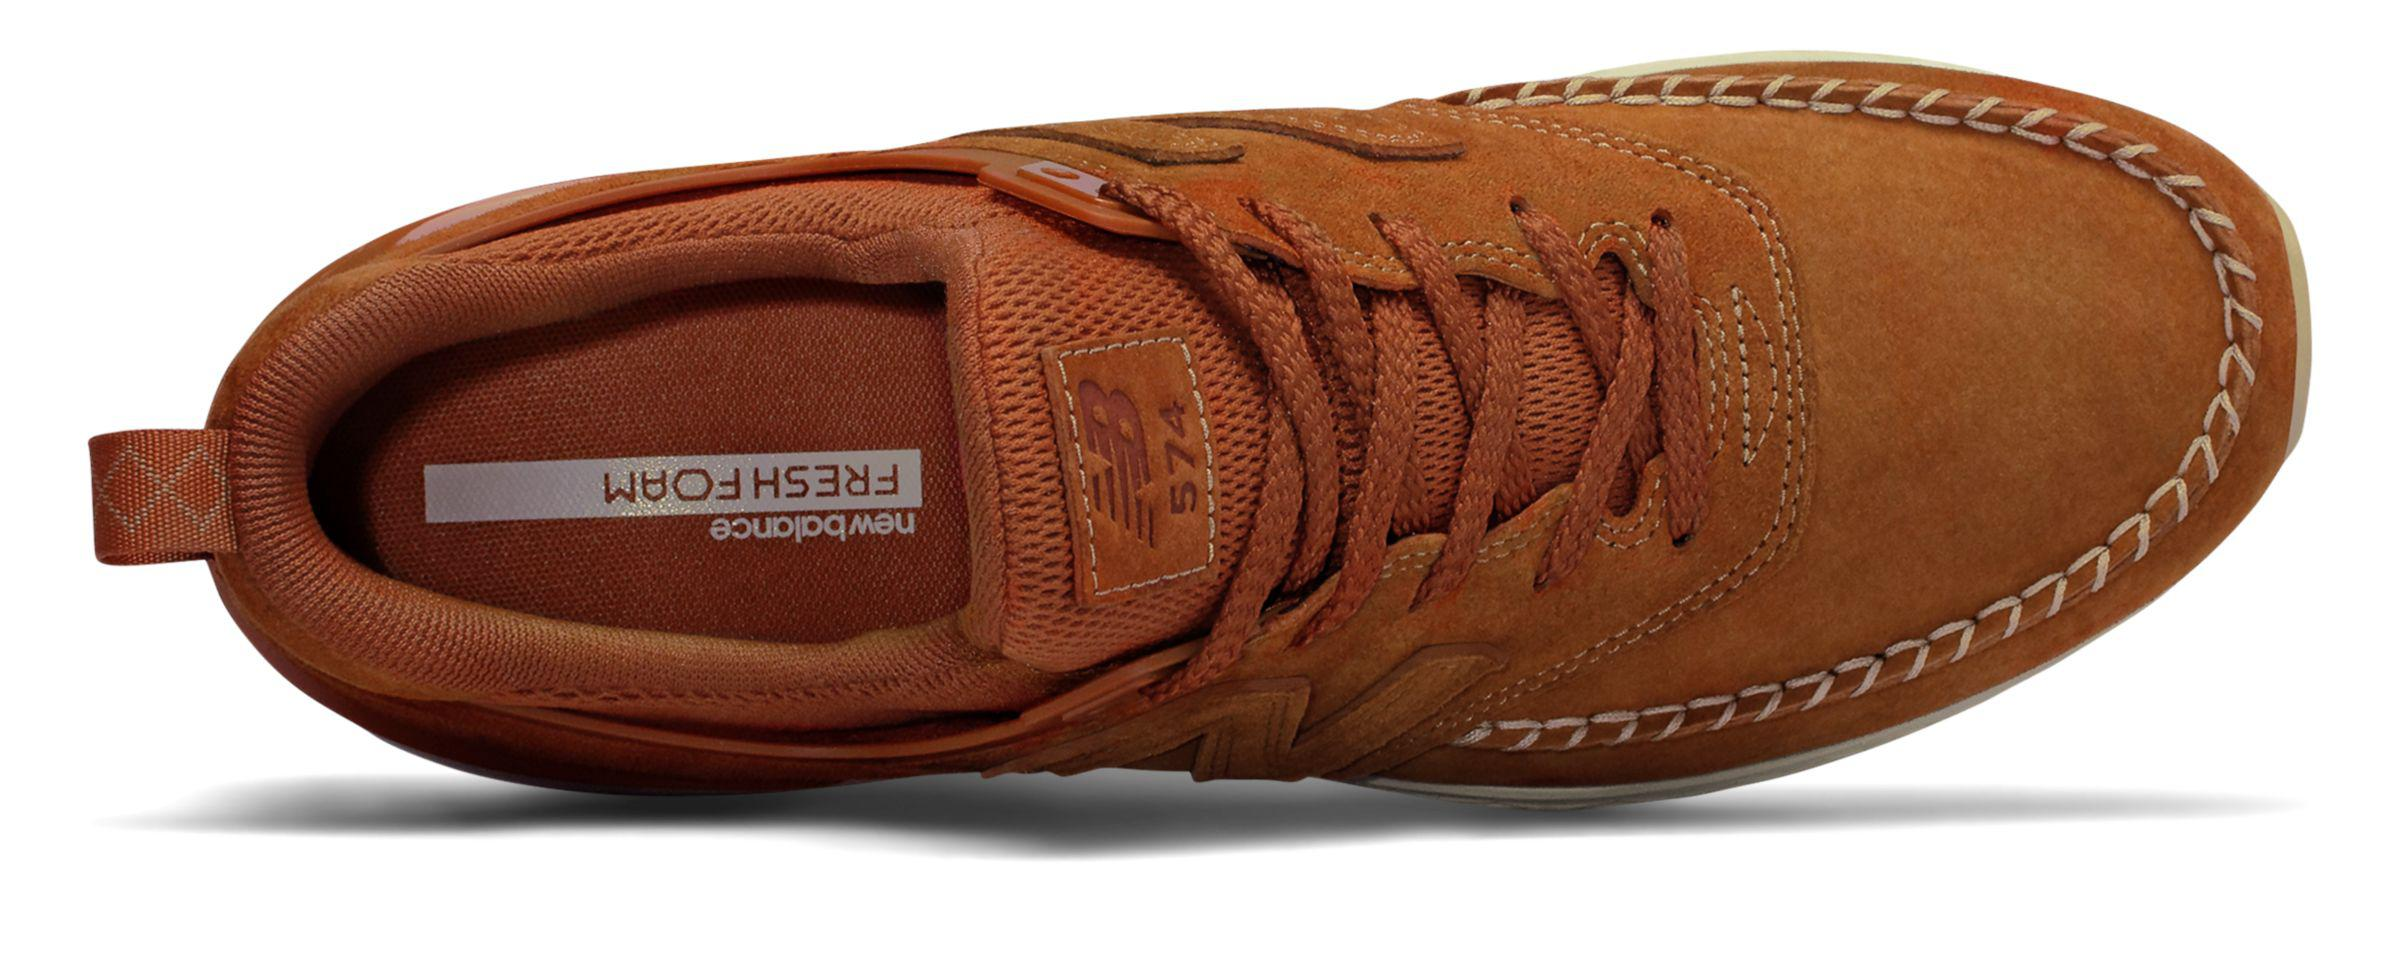 New Balance Suede 574 Sport in Brown